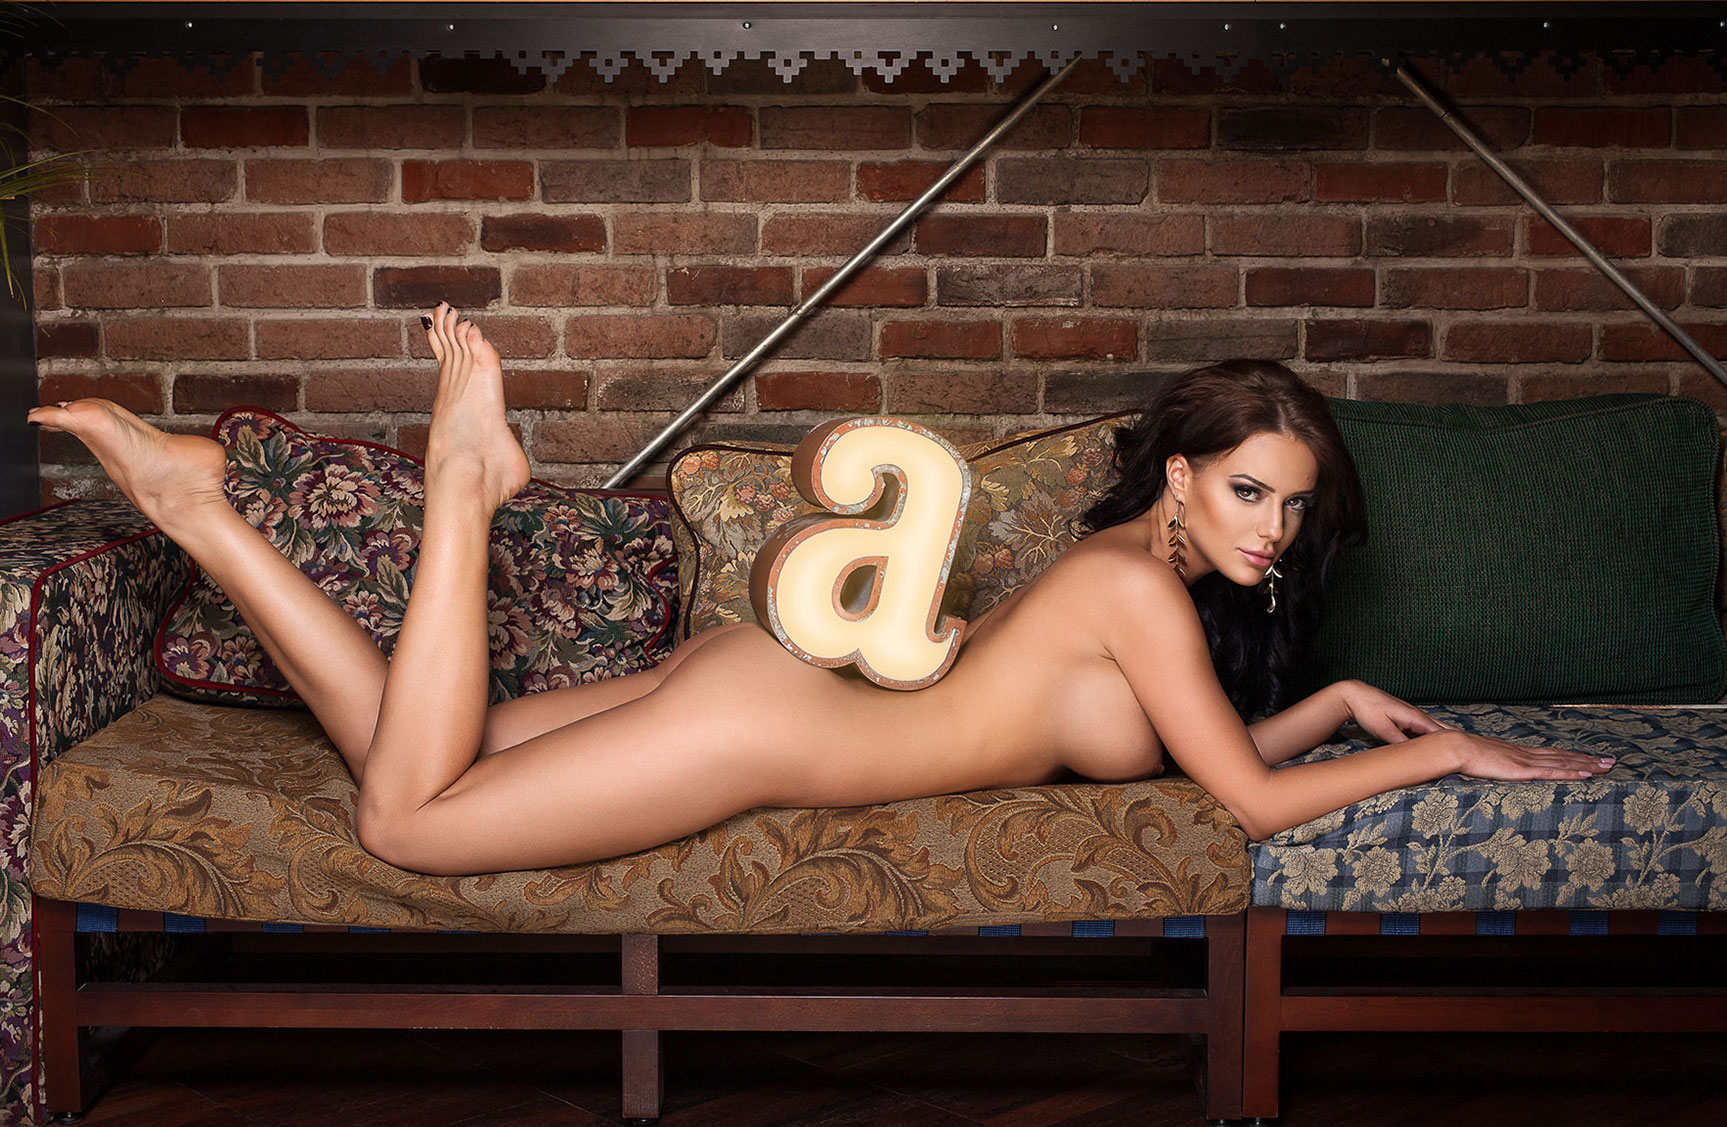 Playboy Romania April 2015 playmate - Alina Ganea nude by Silviu Sandulescu